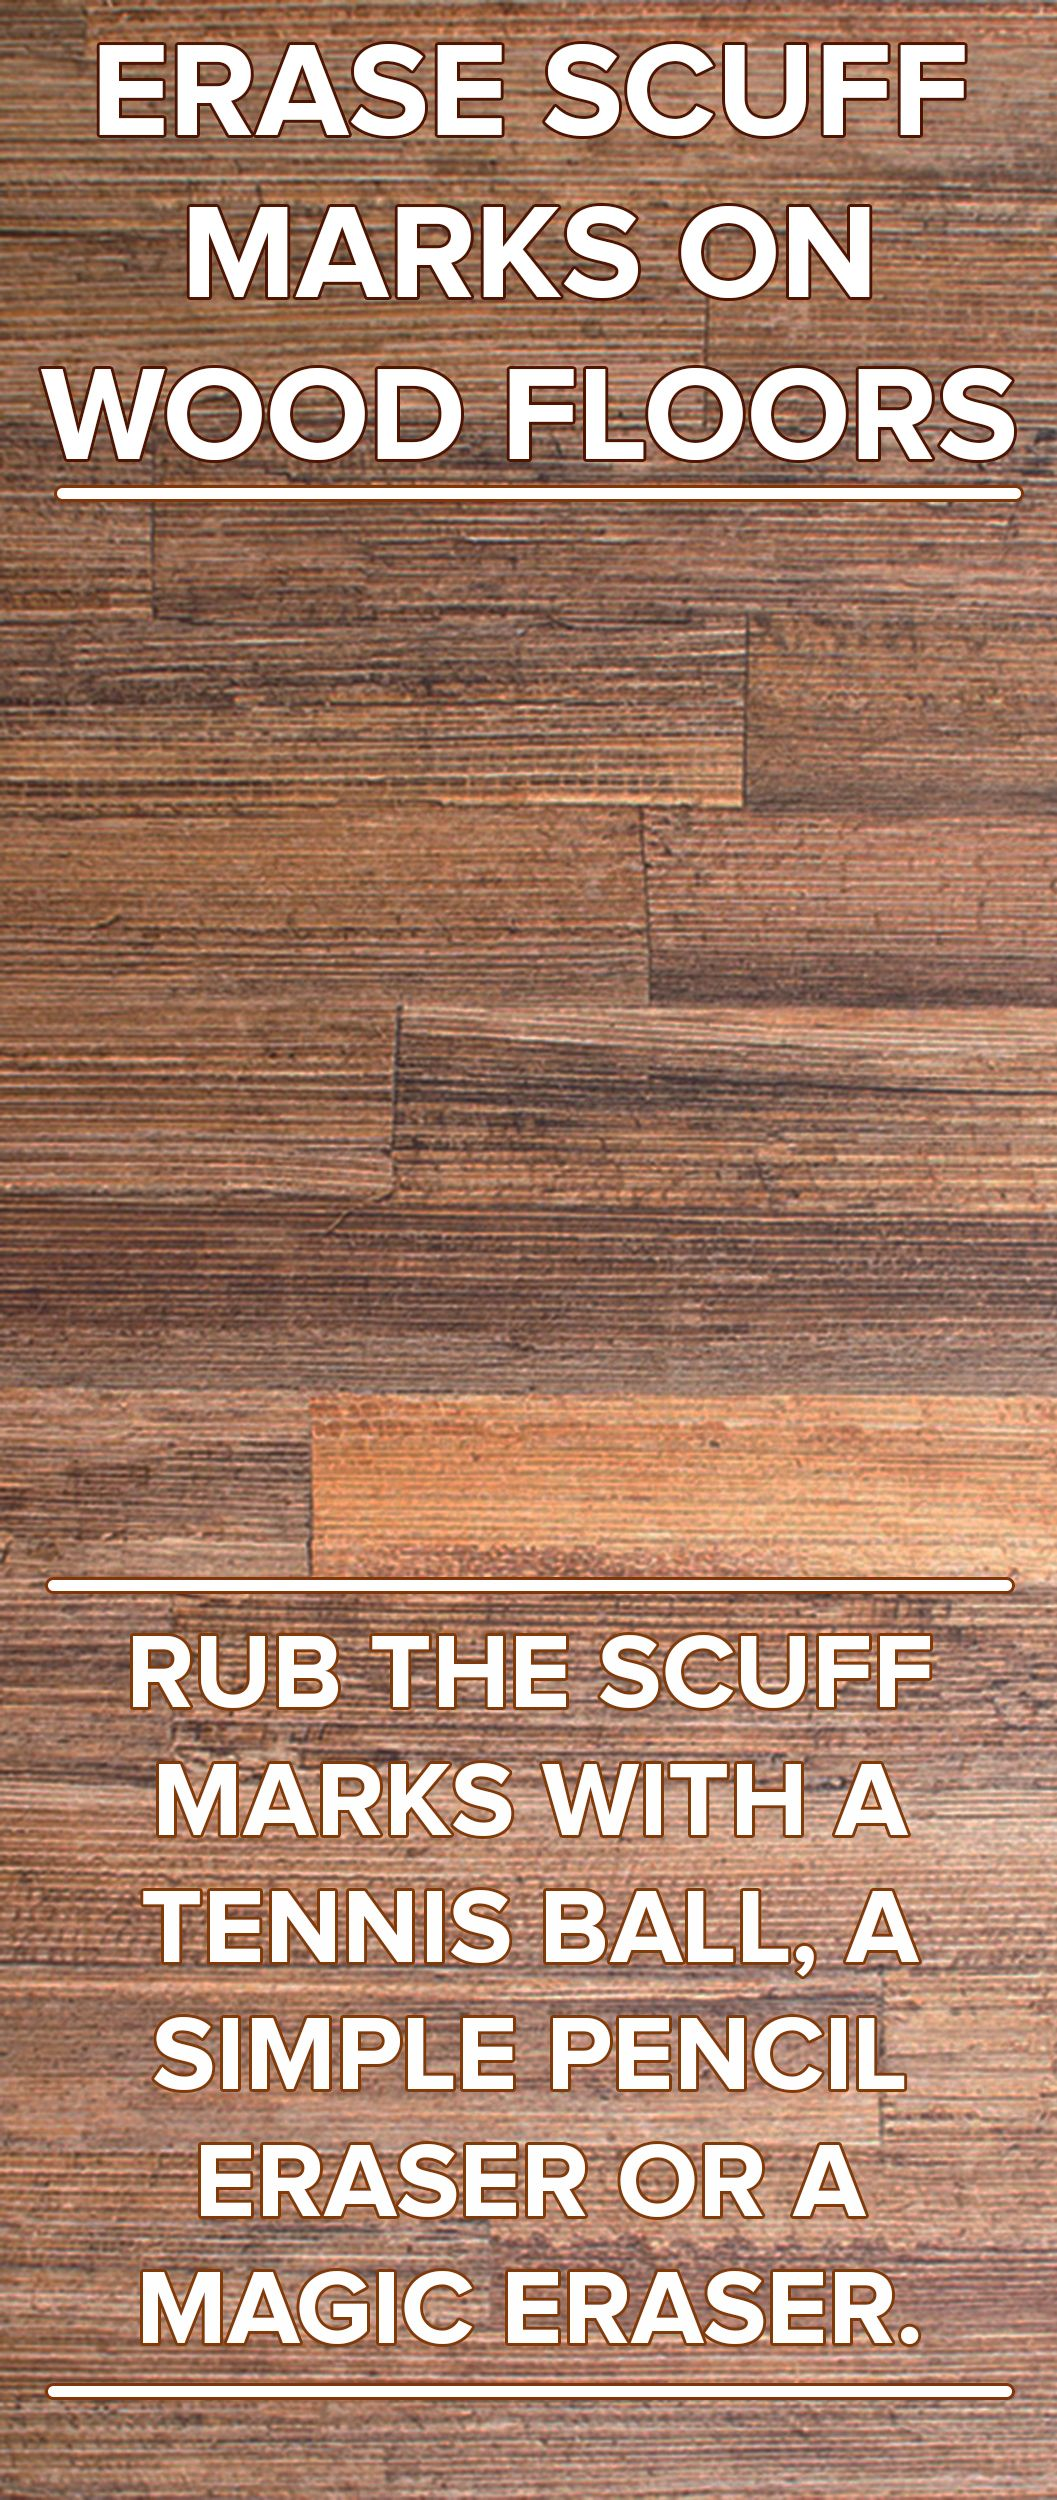 How To Get Scuff Marks Out Of Wooden Floors Carpet